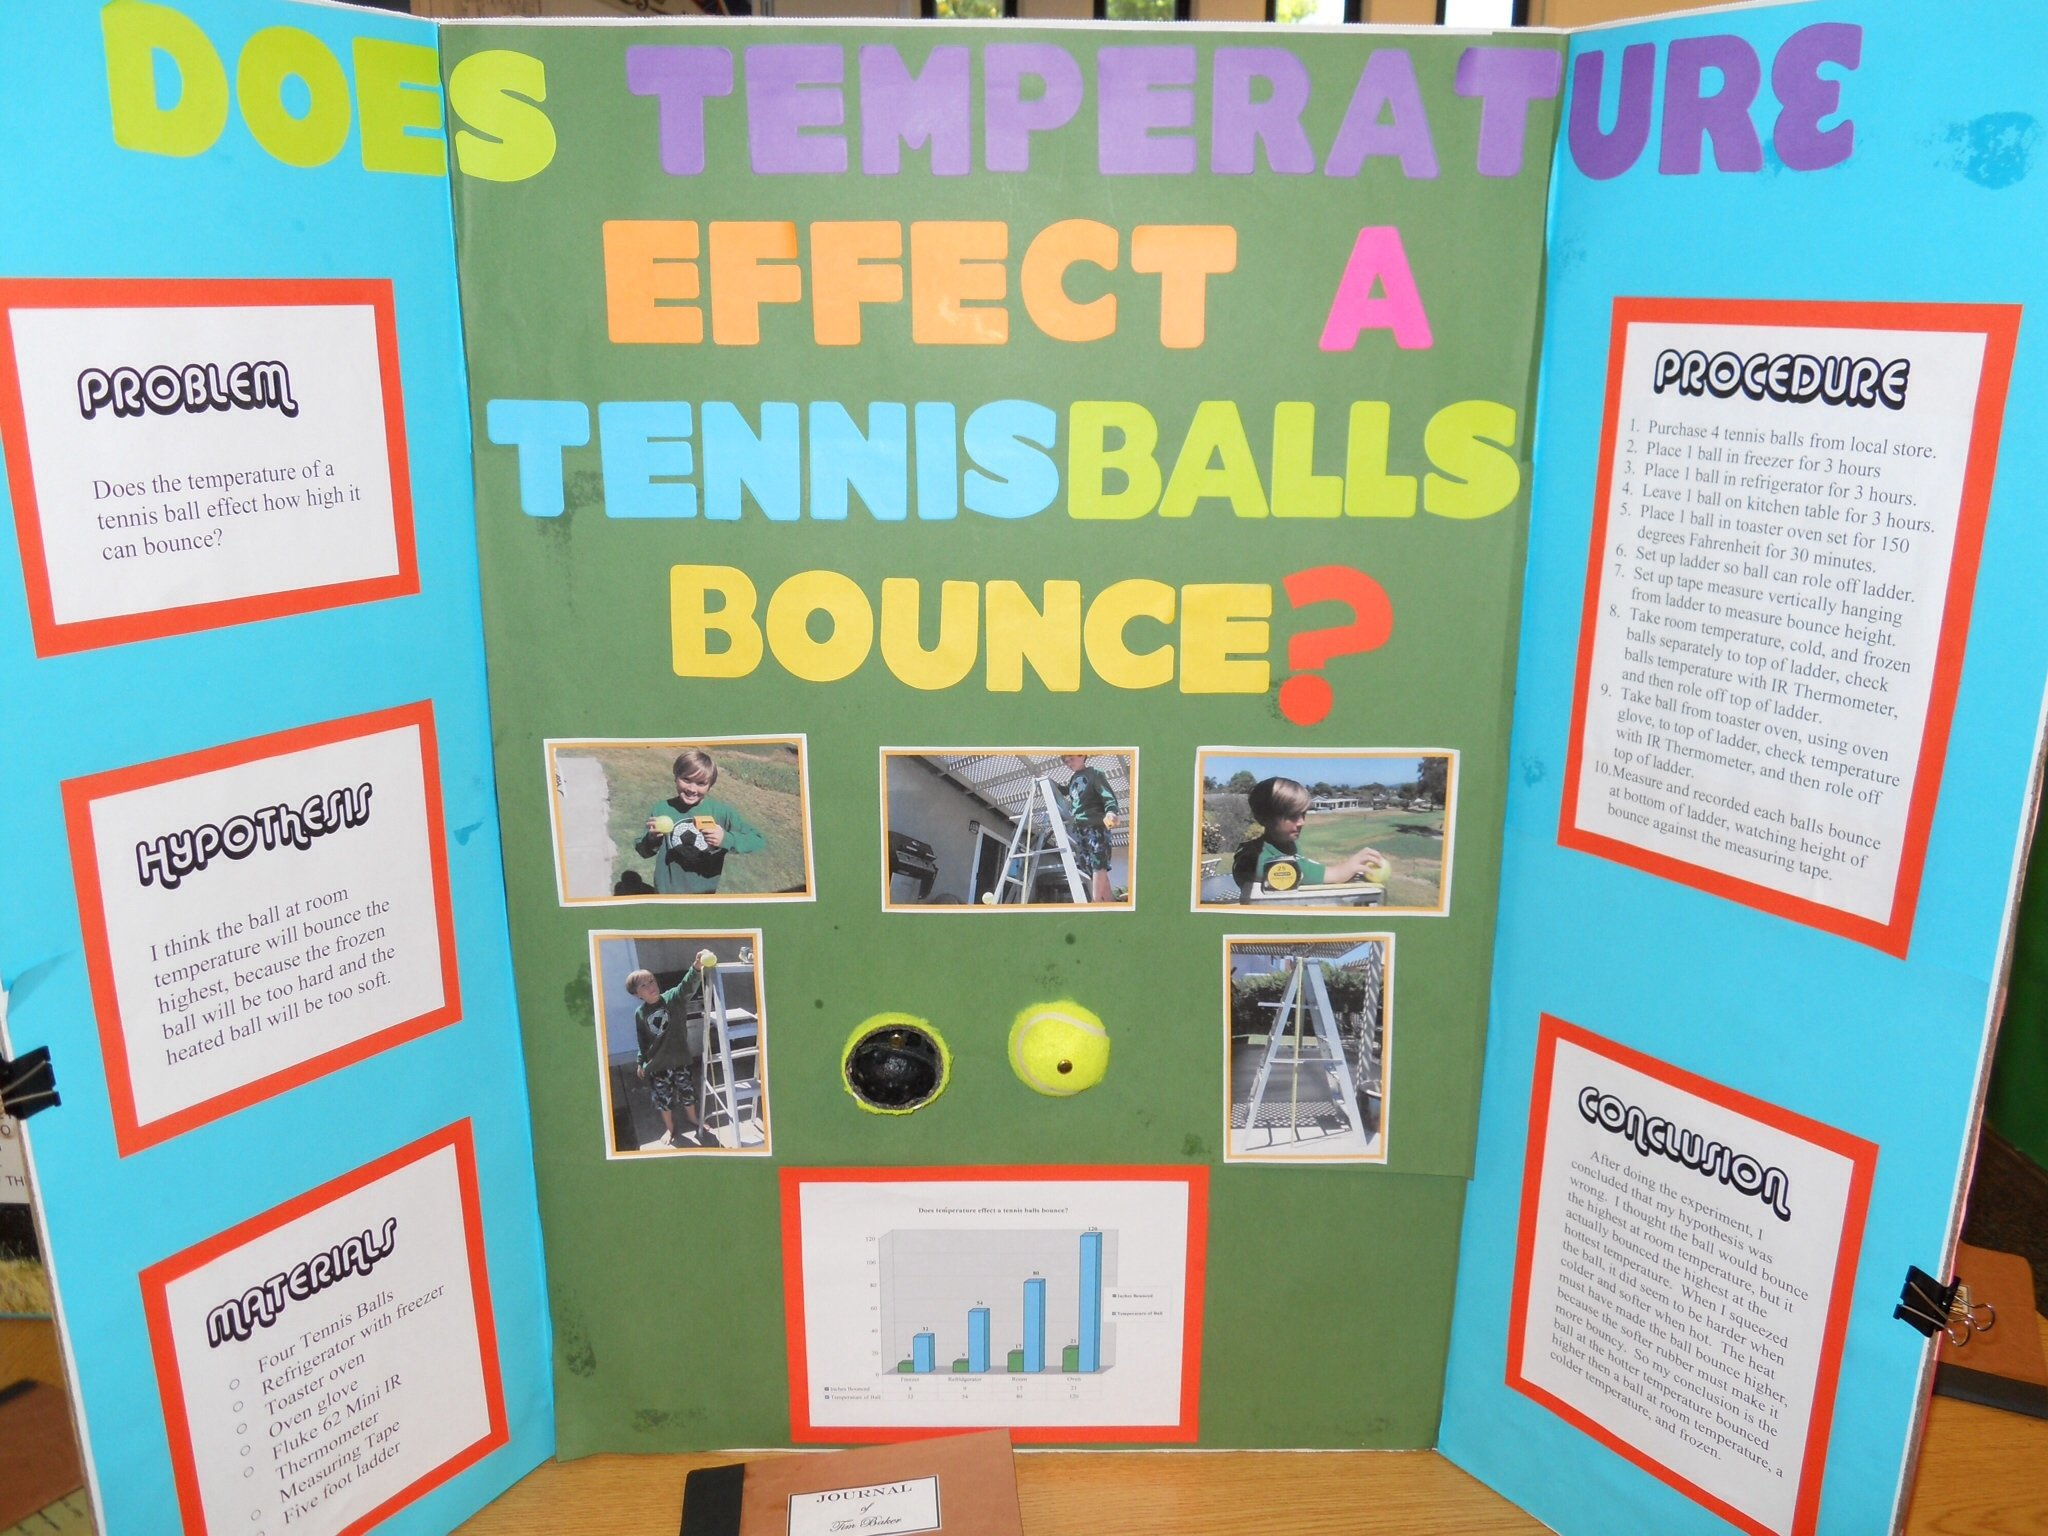 10 Lovely What Are Some Science Fair Ideas cool science fair idea science fair pinterest science fair and 1 2020